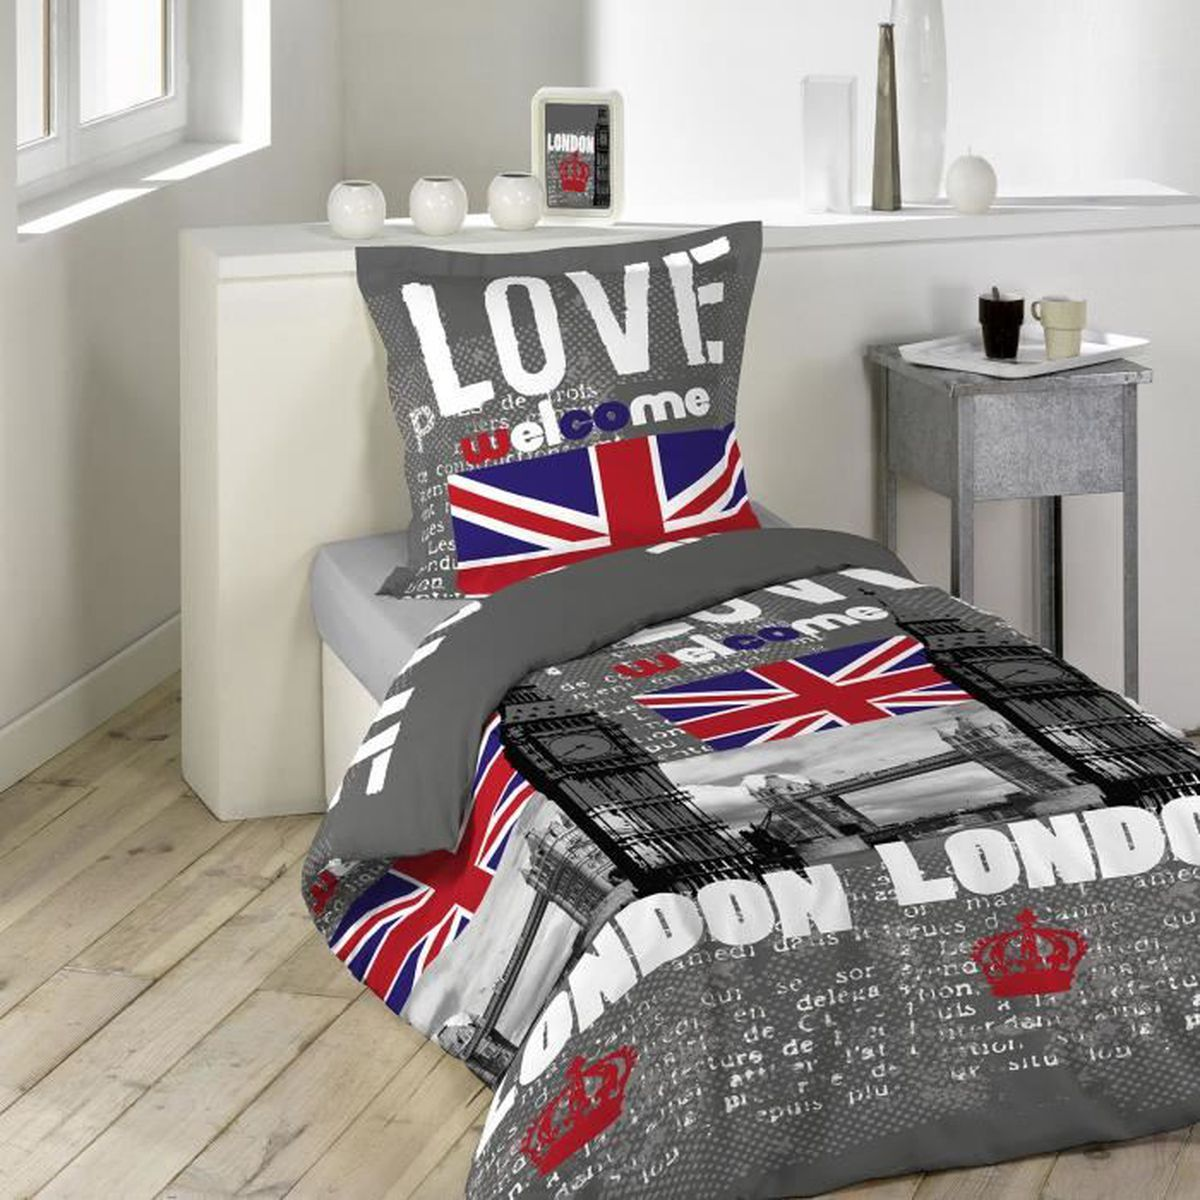 housse de couette london 140x200 achat vente housse de couette london 140x200 pas cher les. Black Bedroom Furniture Sets. Home Design Ideas